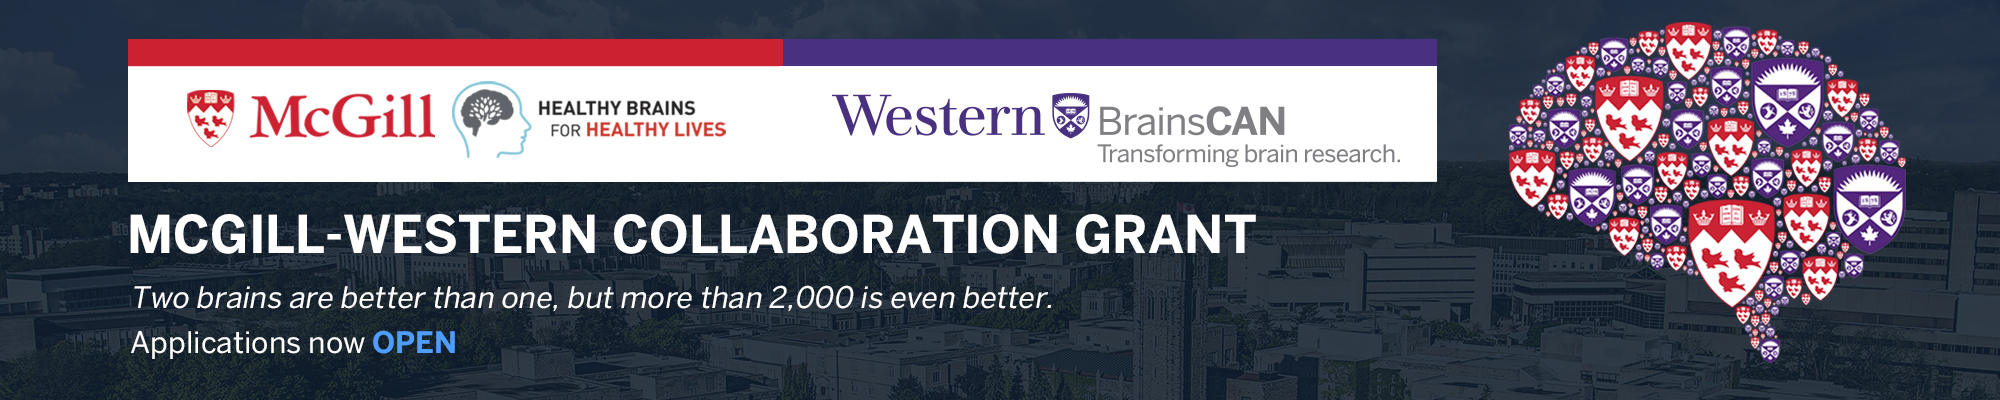 McGill-Western Collaborative Grant Banner